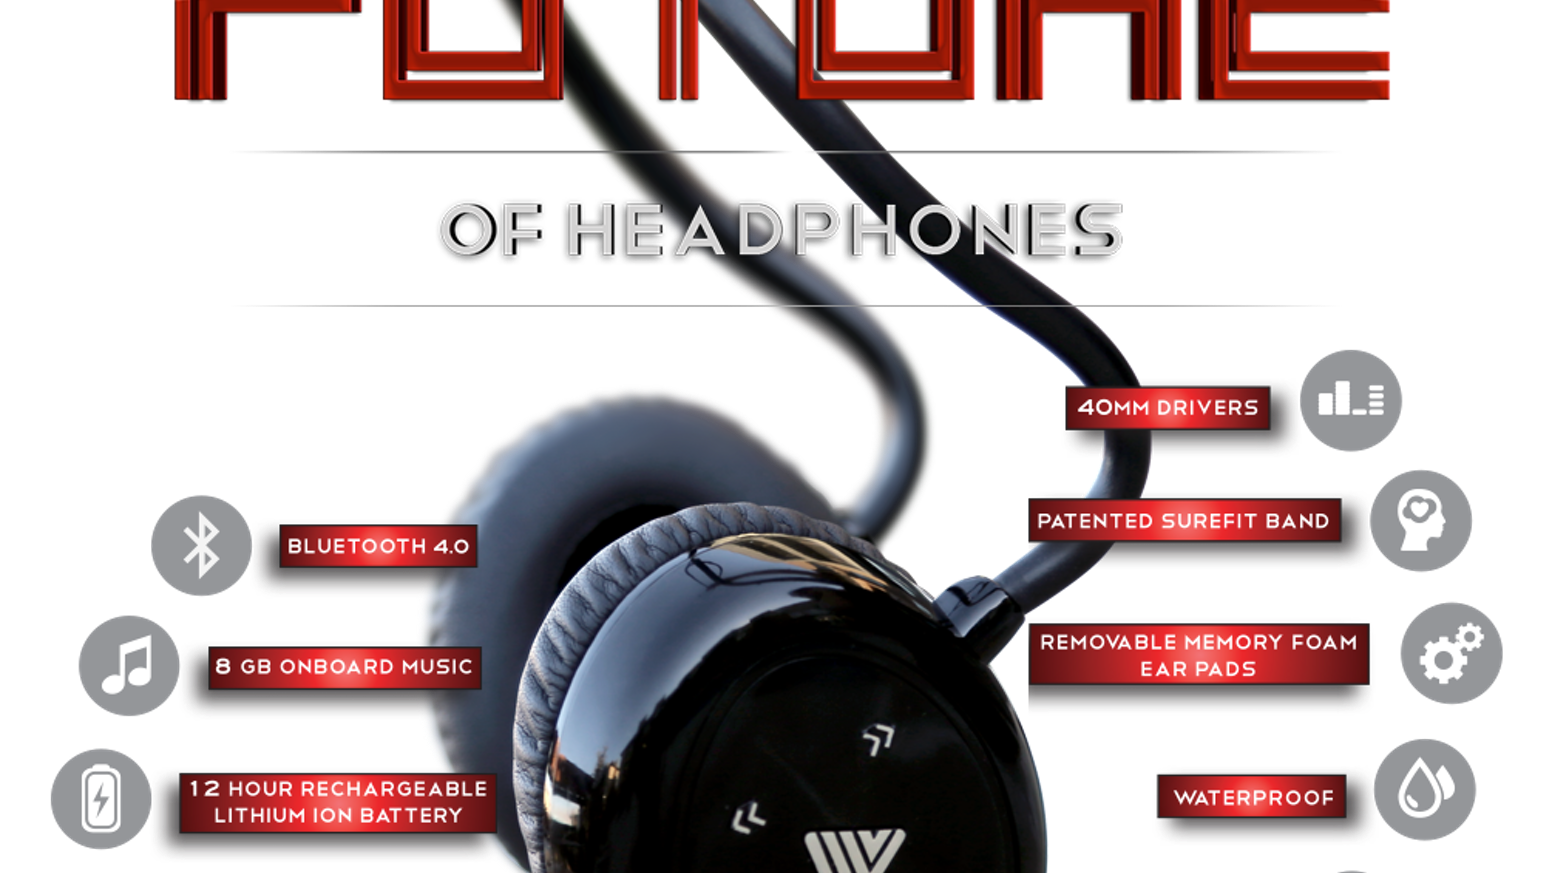 The FIRST Premium Over-Ear Wireless Active Headphone!